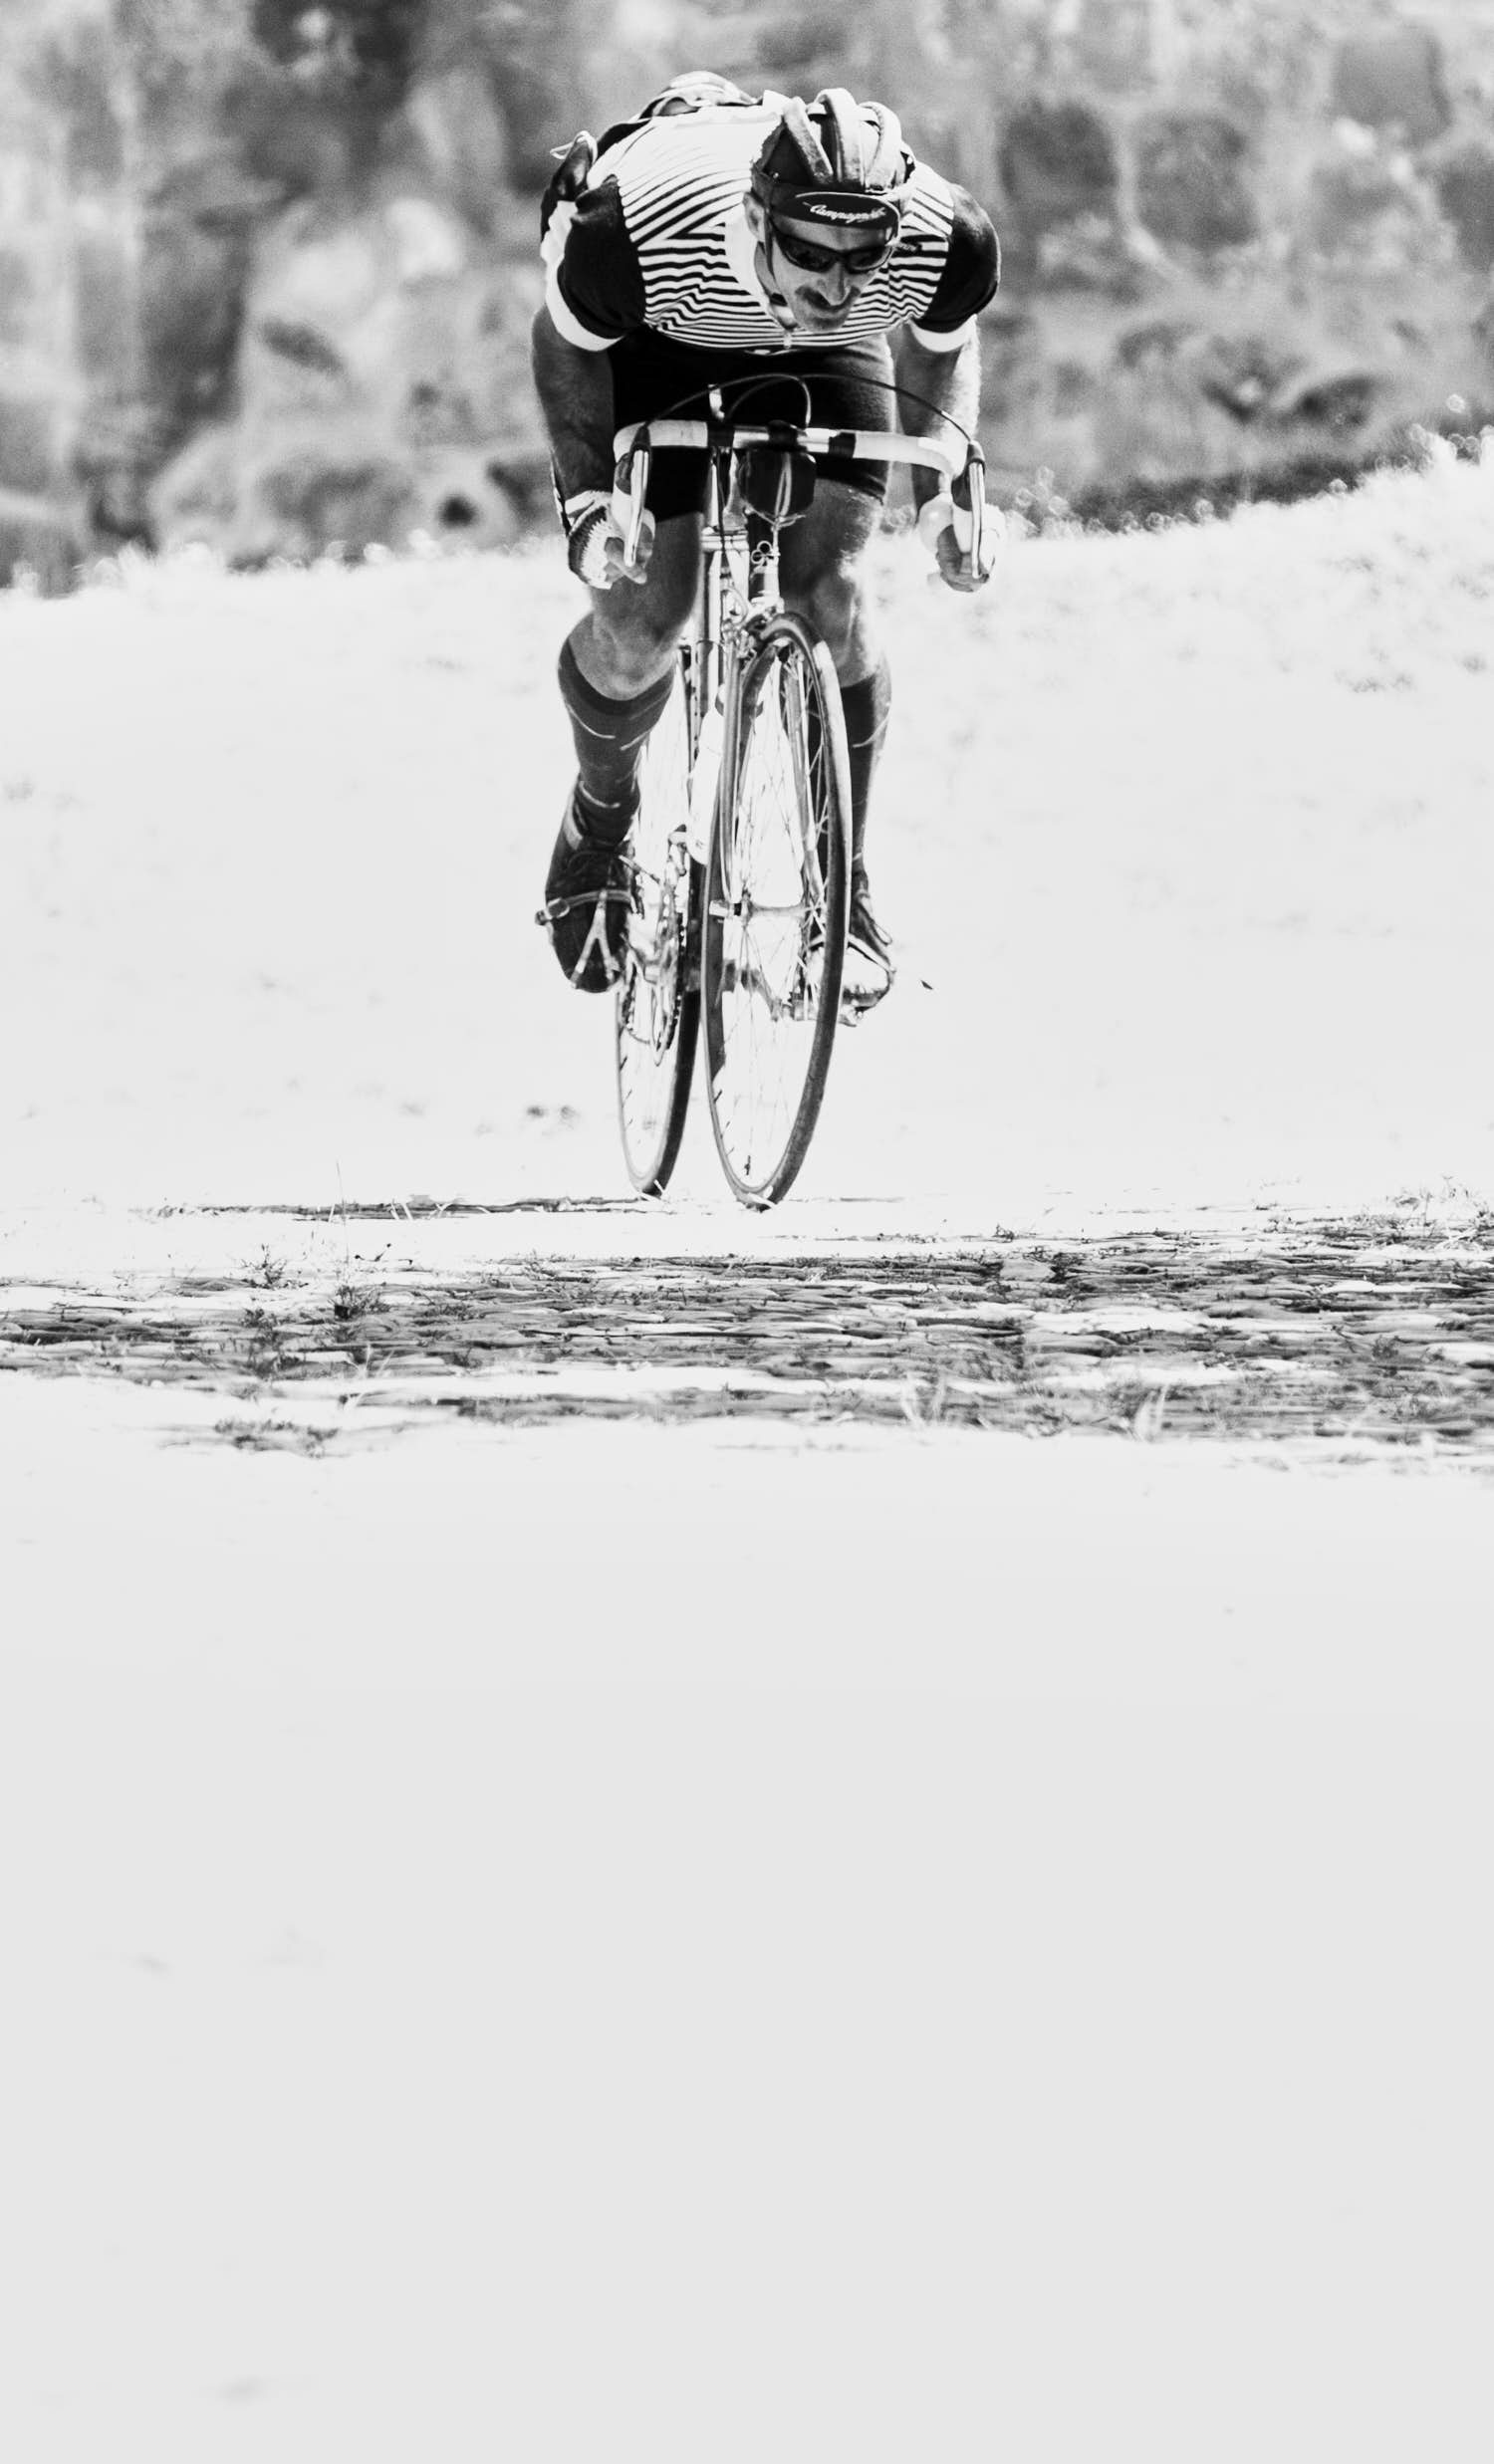 A cyclist wearing a classic retro outfit and riding a classic retro bike, ascending a cobble stone road.